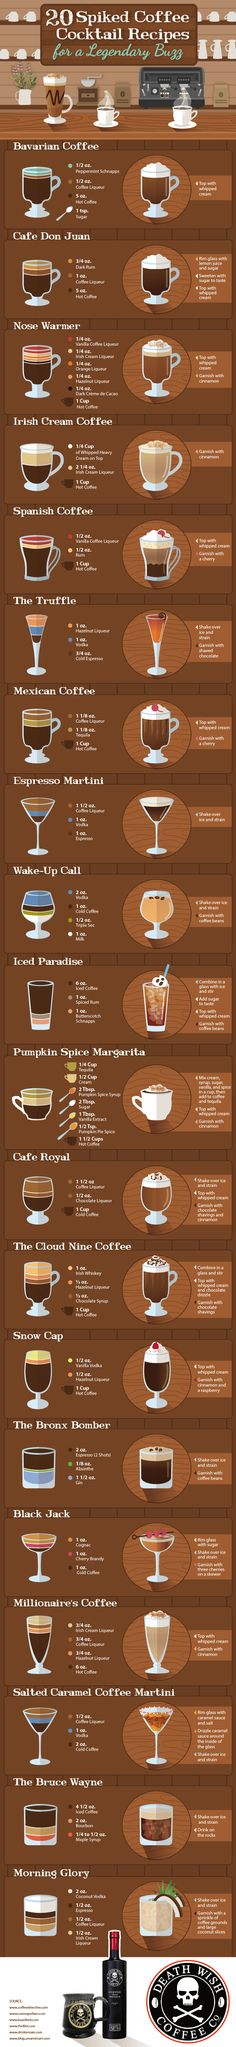 20 Spiked Coffee Cocktail Recipes for a Legendary Buzz #infografía #infographic #Coffee #Food